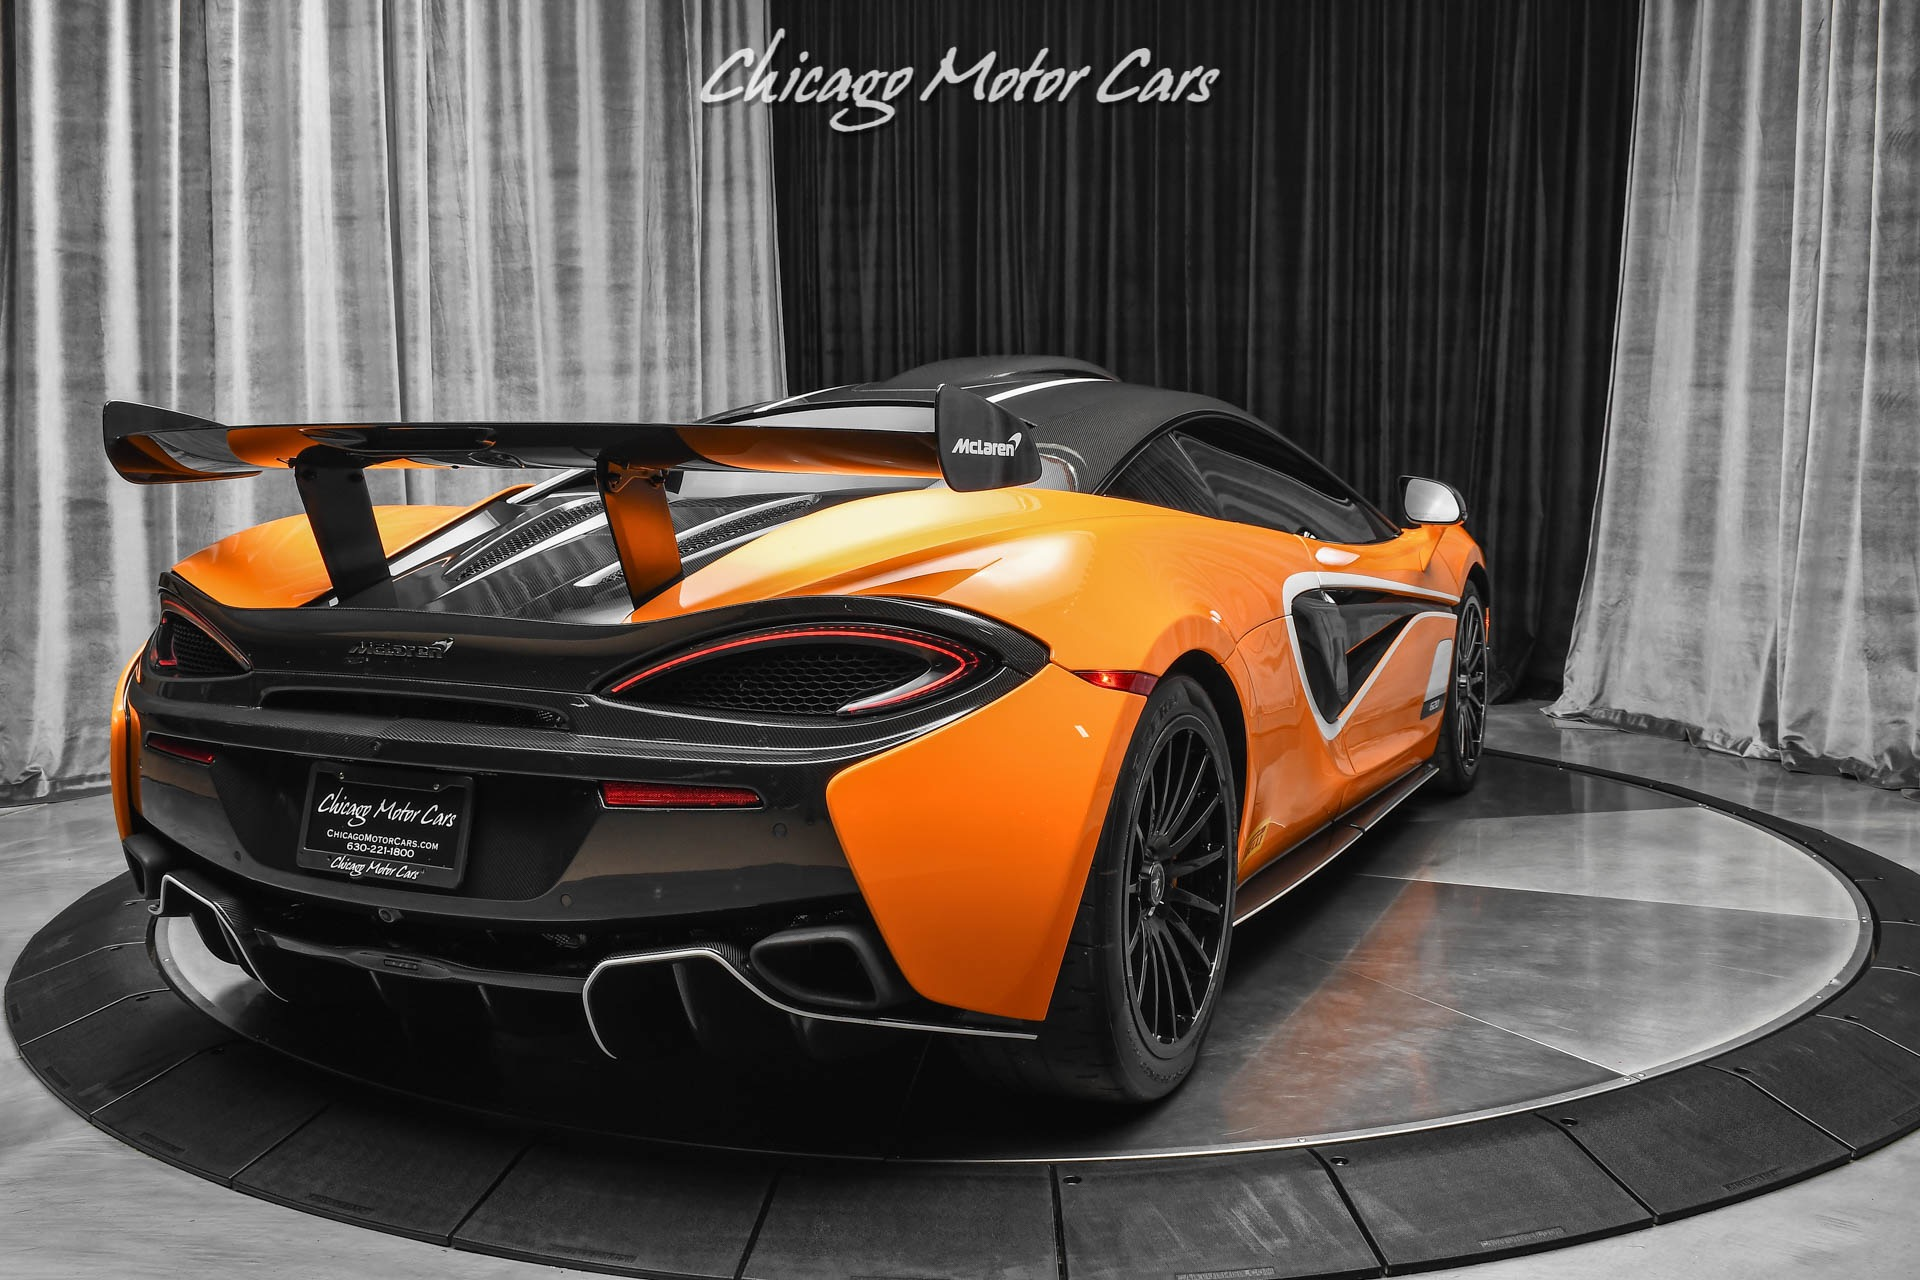 Used-2020-McLaren-620R-Coupe-ONLY-1900-MILES-MSO-CARBON-FIBER-BODY-PANELS-RARE-TRACK-MCLAREN